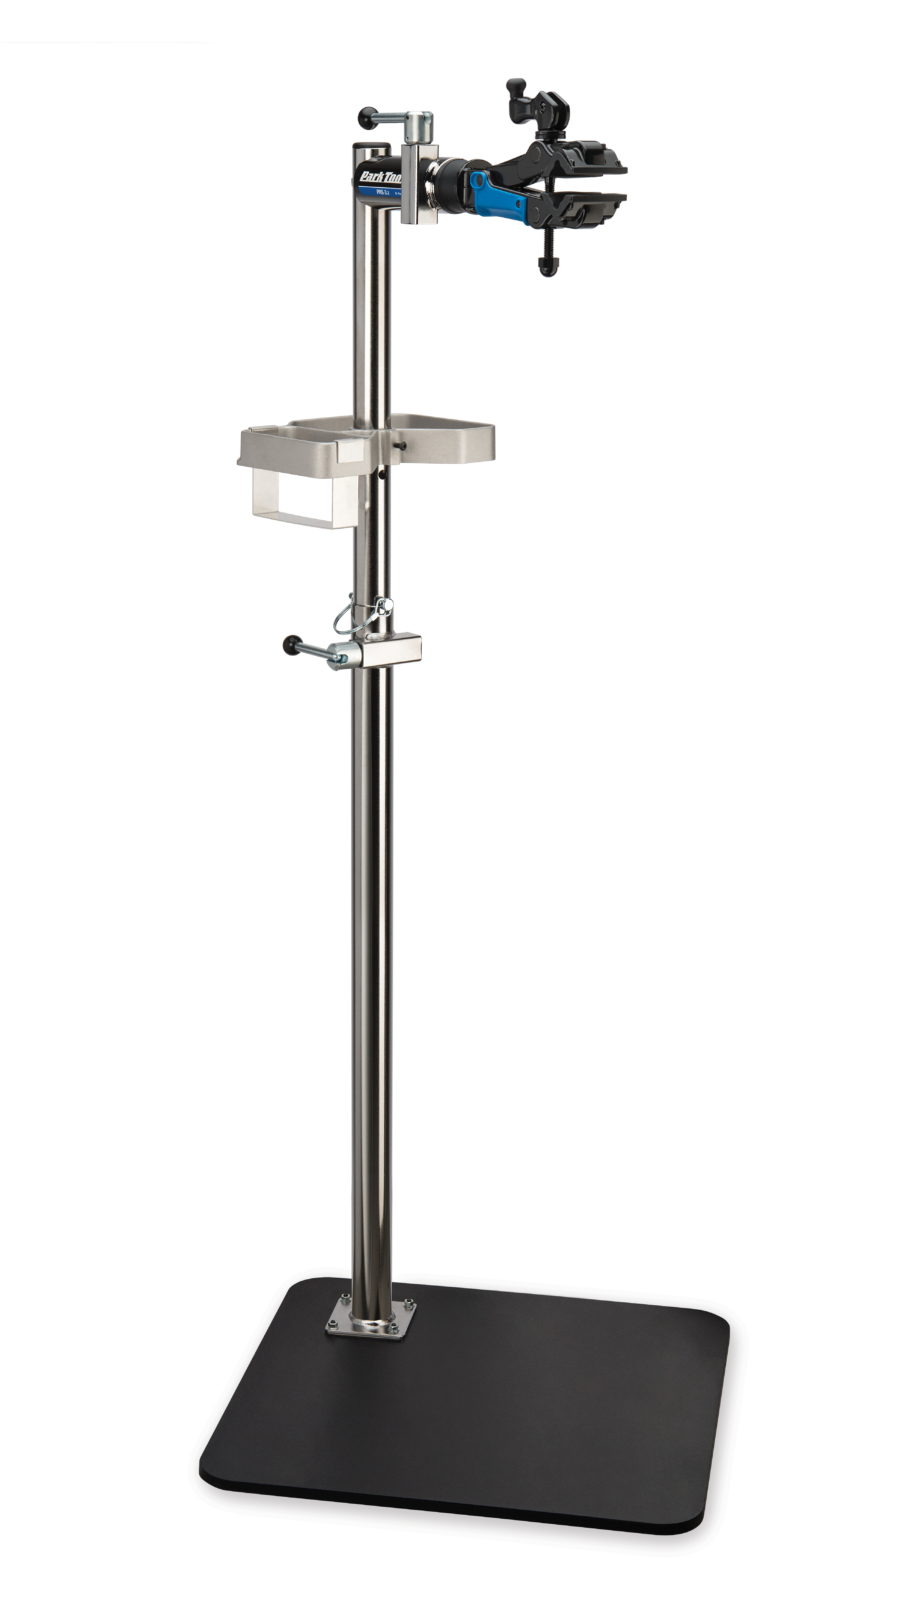 Prs 3 2 2 Deluxe Single Arm Repair Stand Park Tool